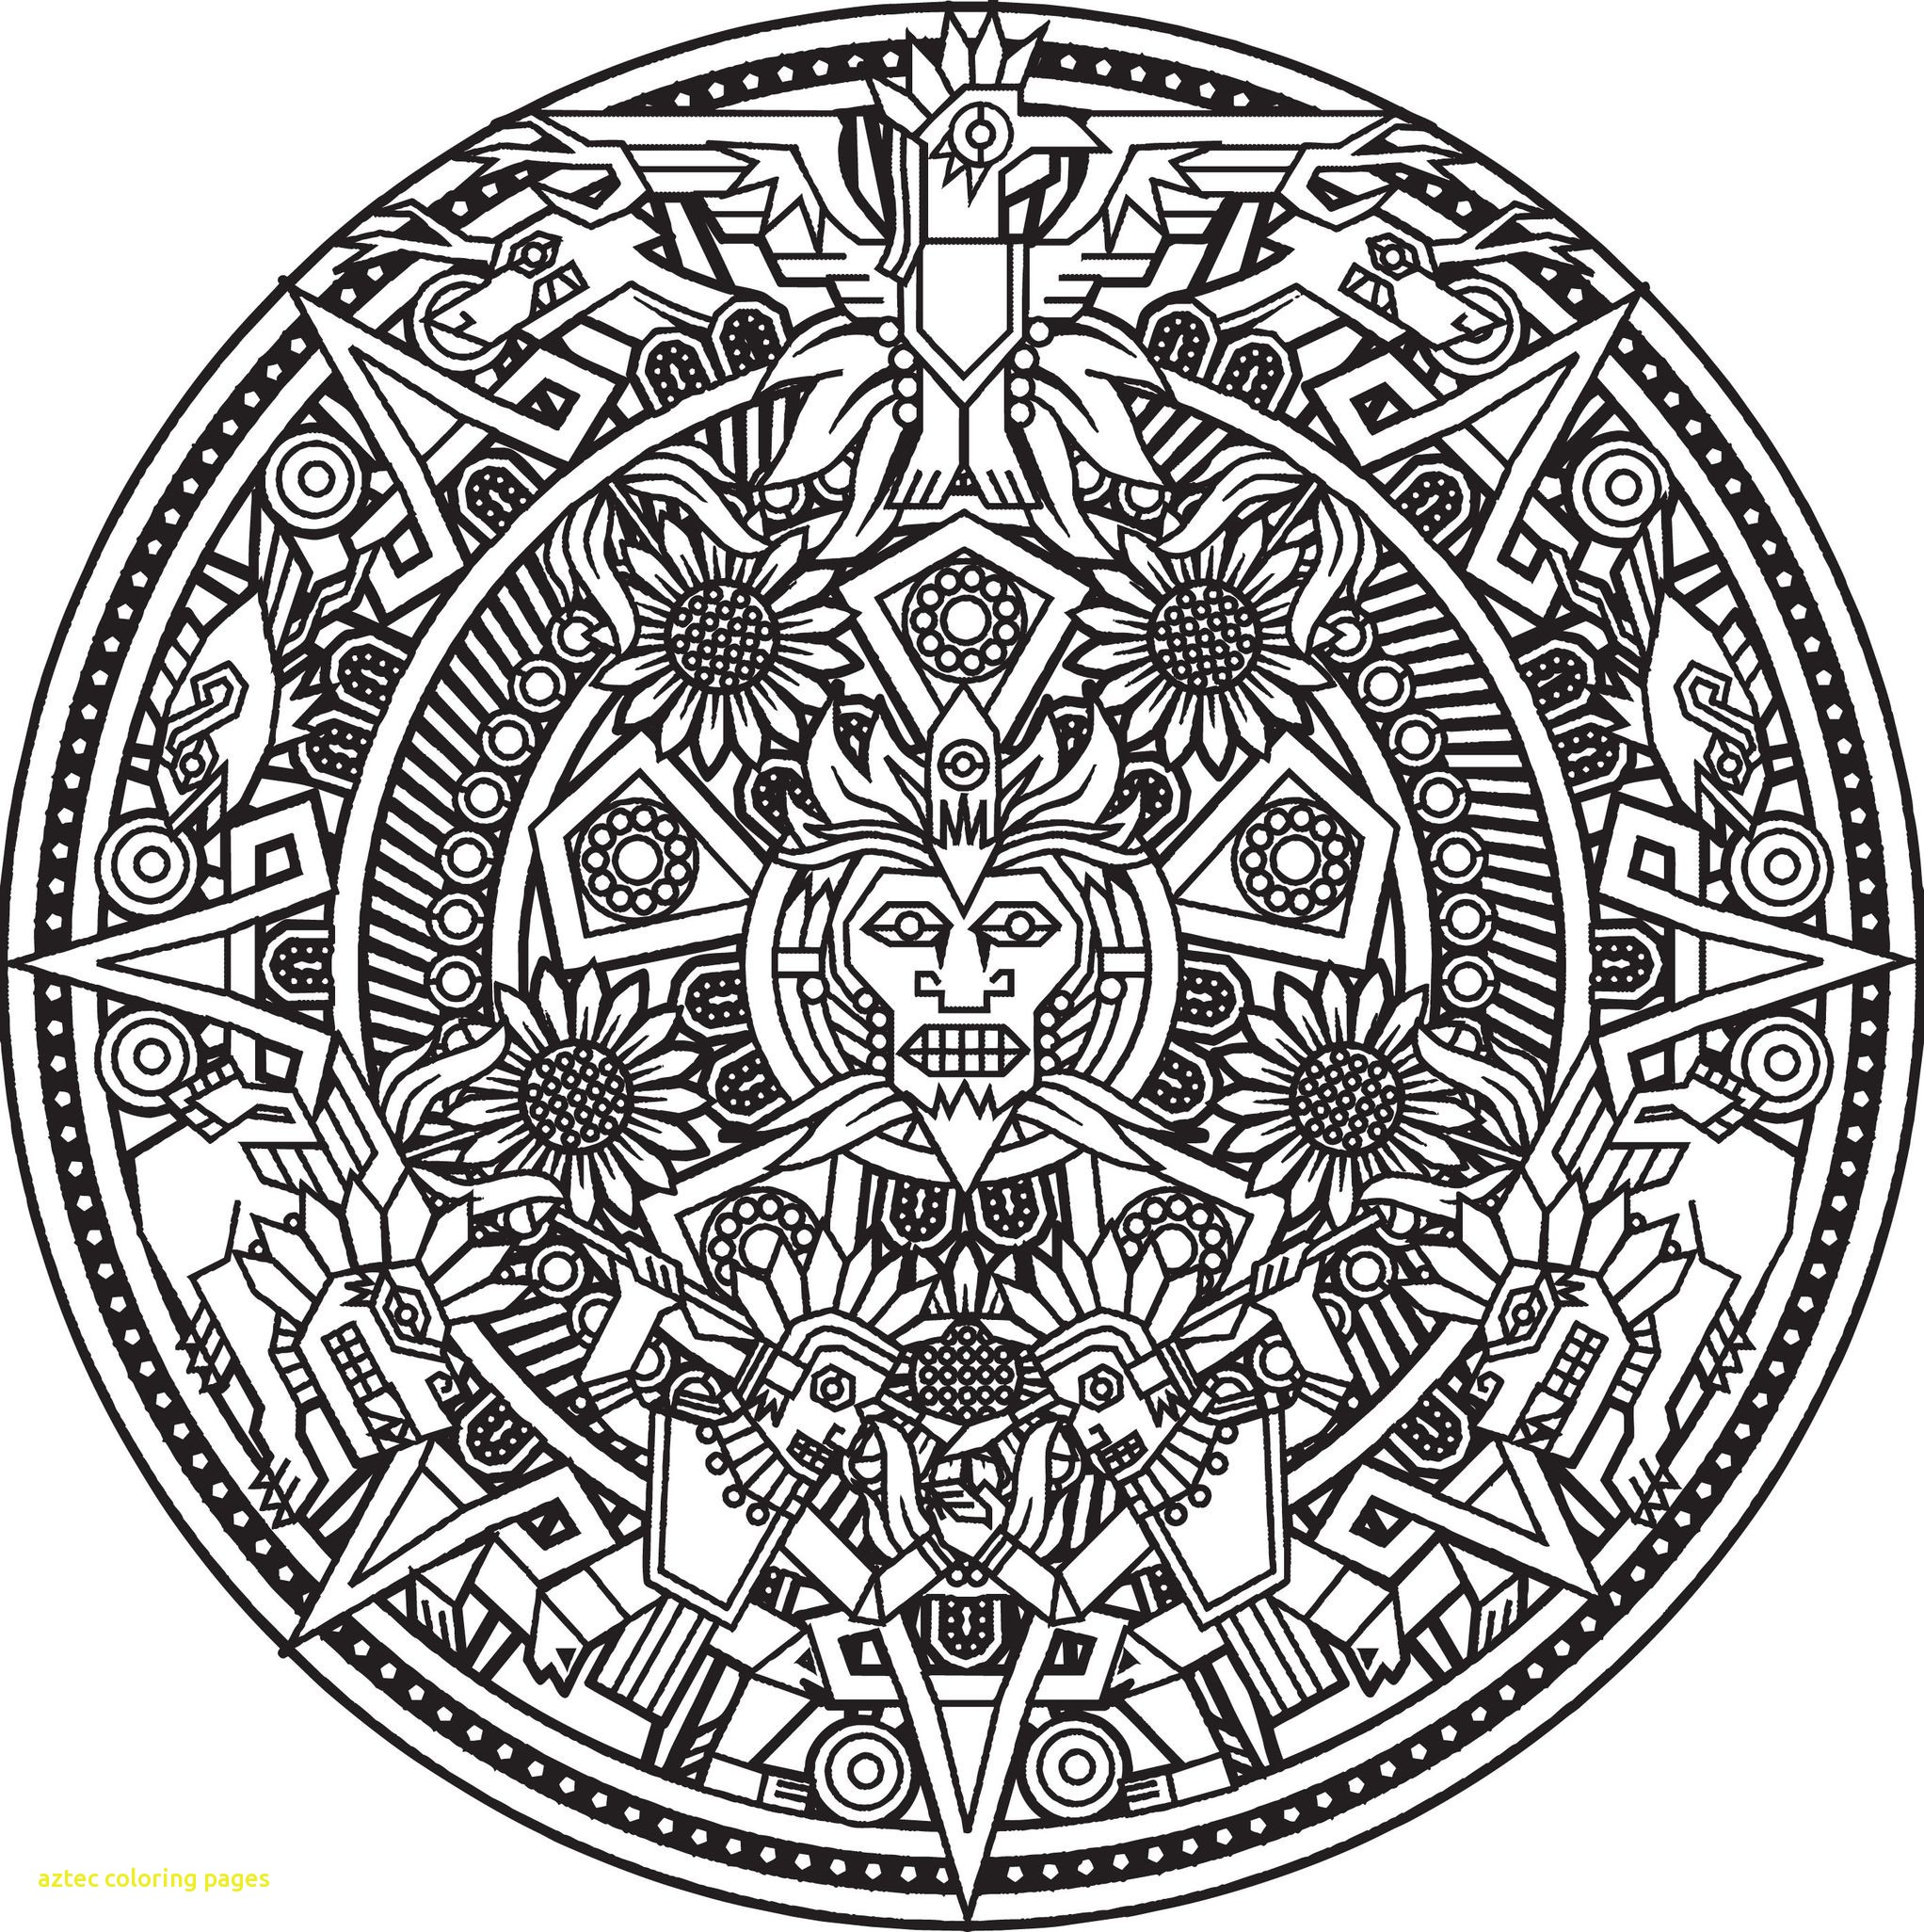 2044x2052 Aztec Coloring Pages With Mandala Inca Or Maya God To Color